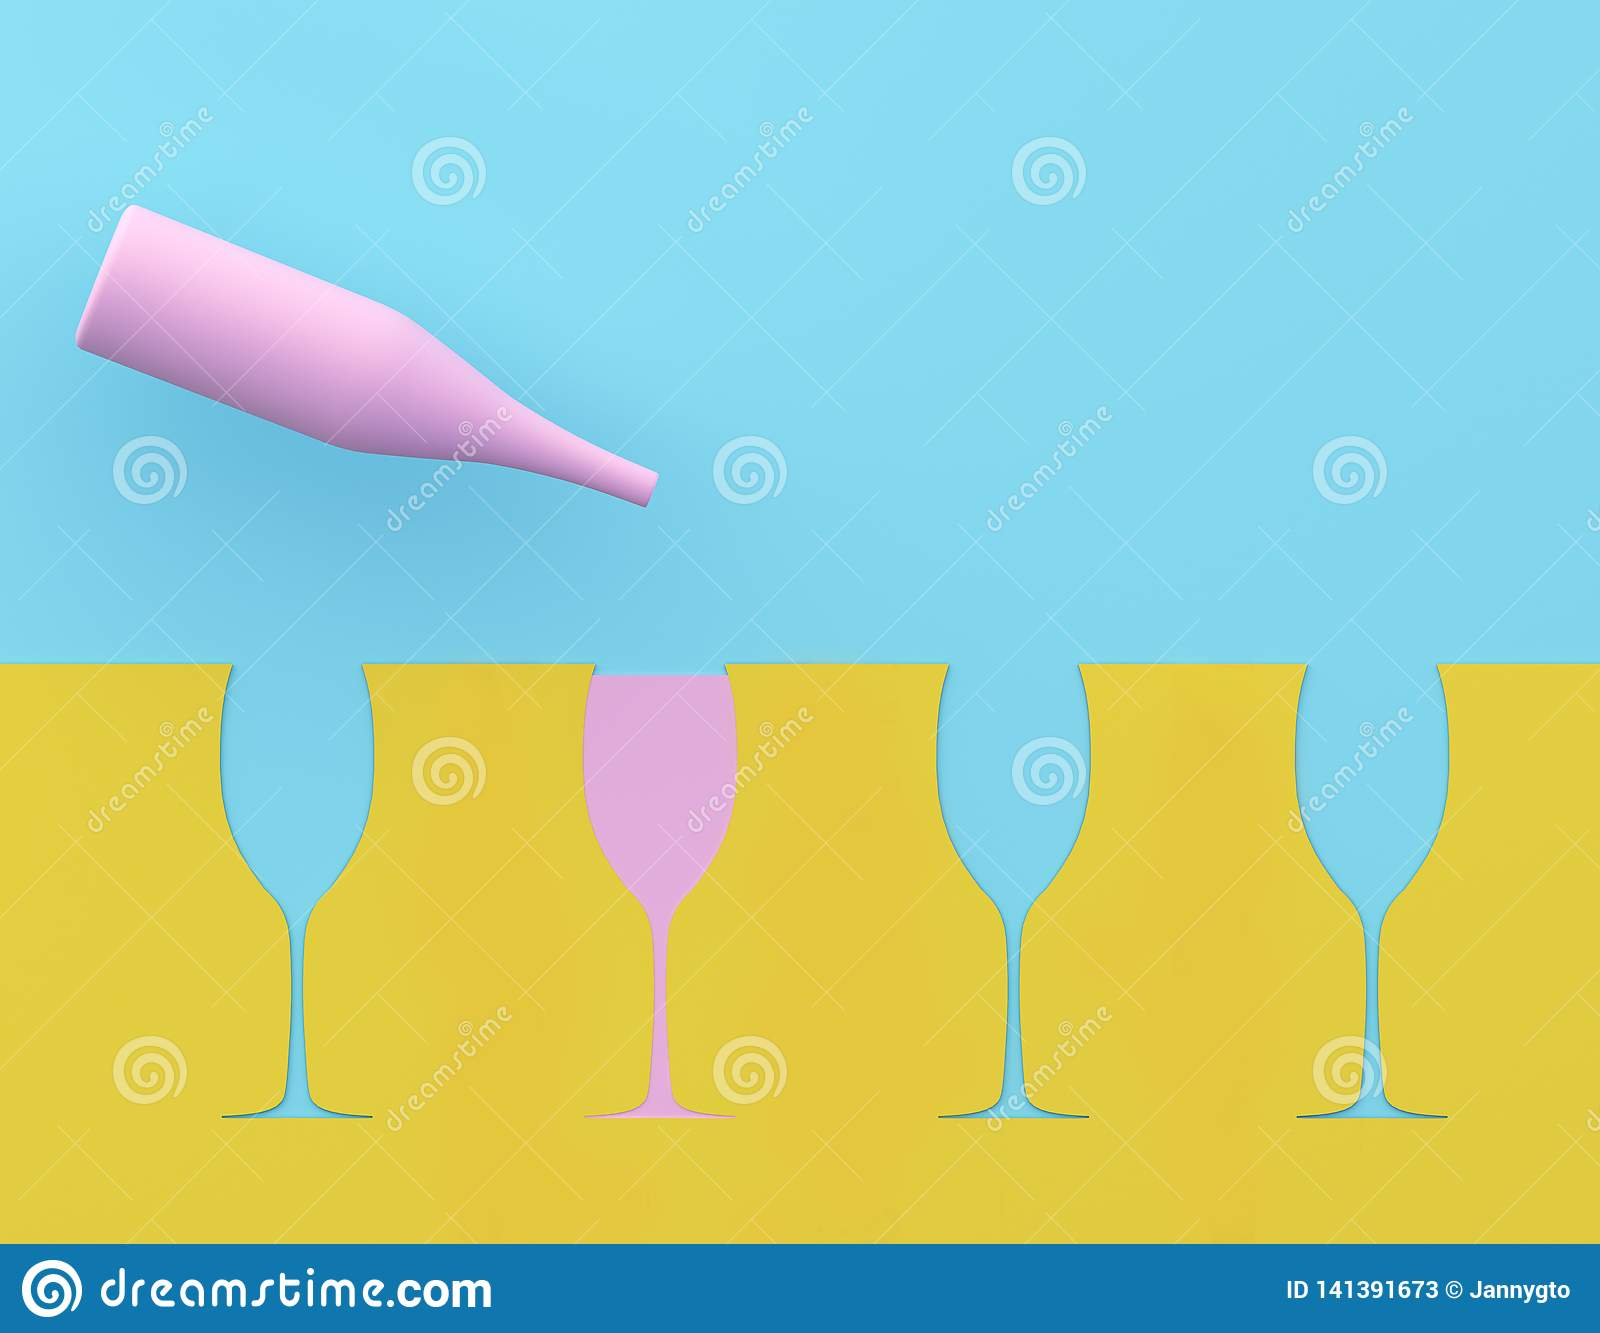 Outstanding pink champagne glass on blue and yellow pastel background. Party minimal concept.